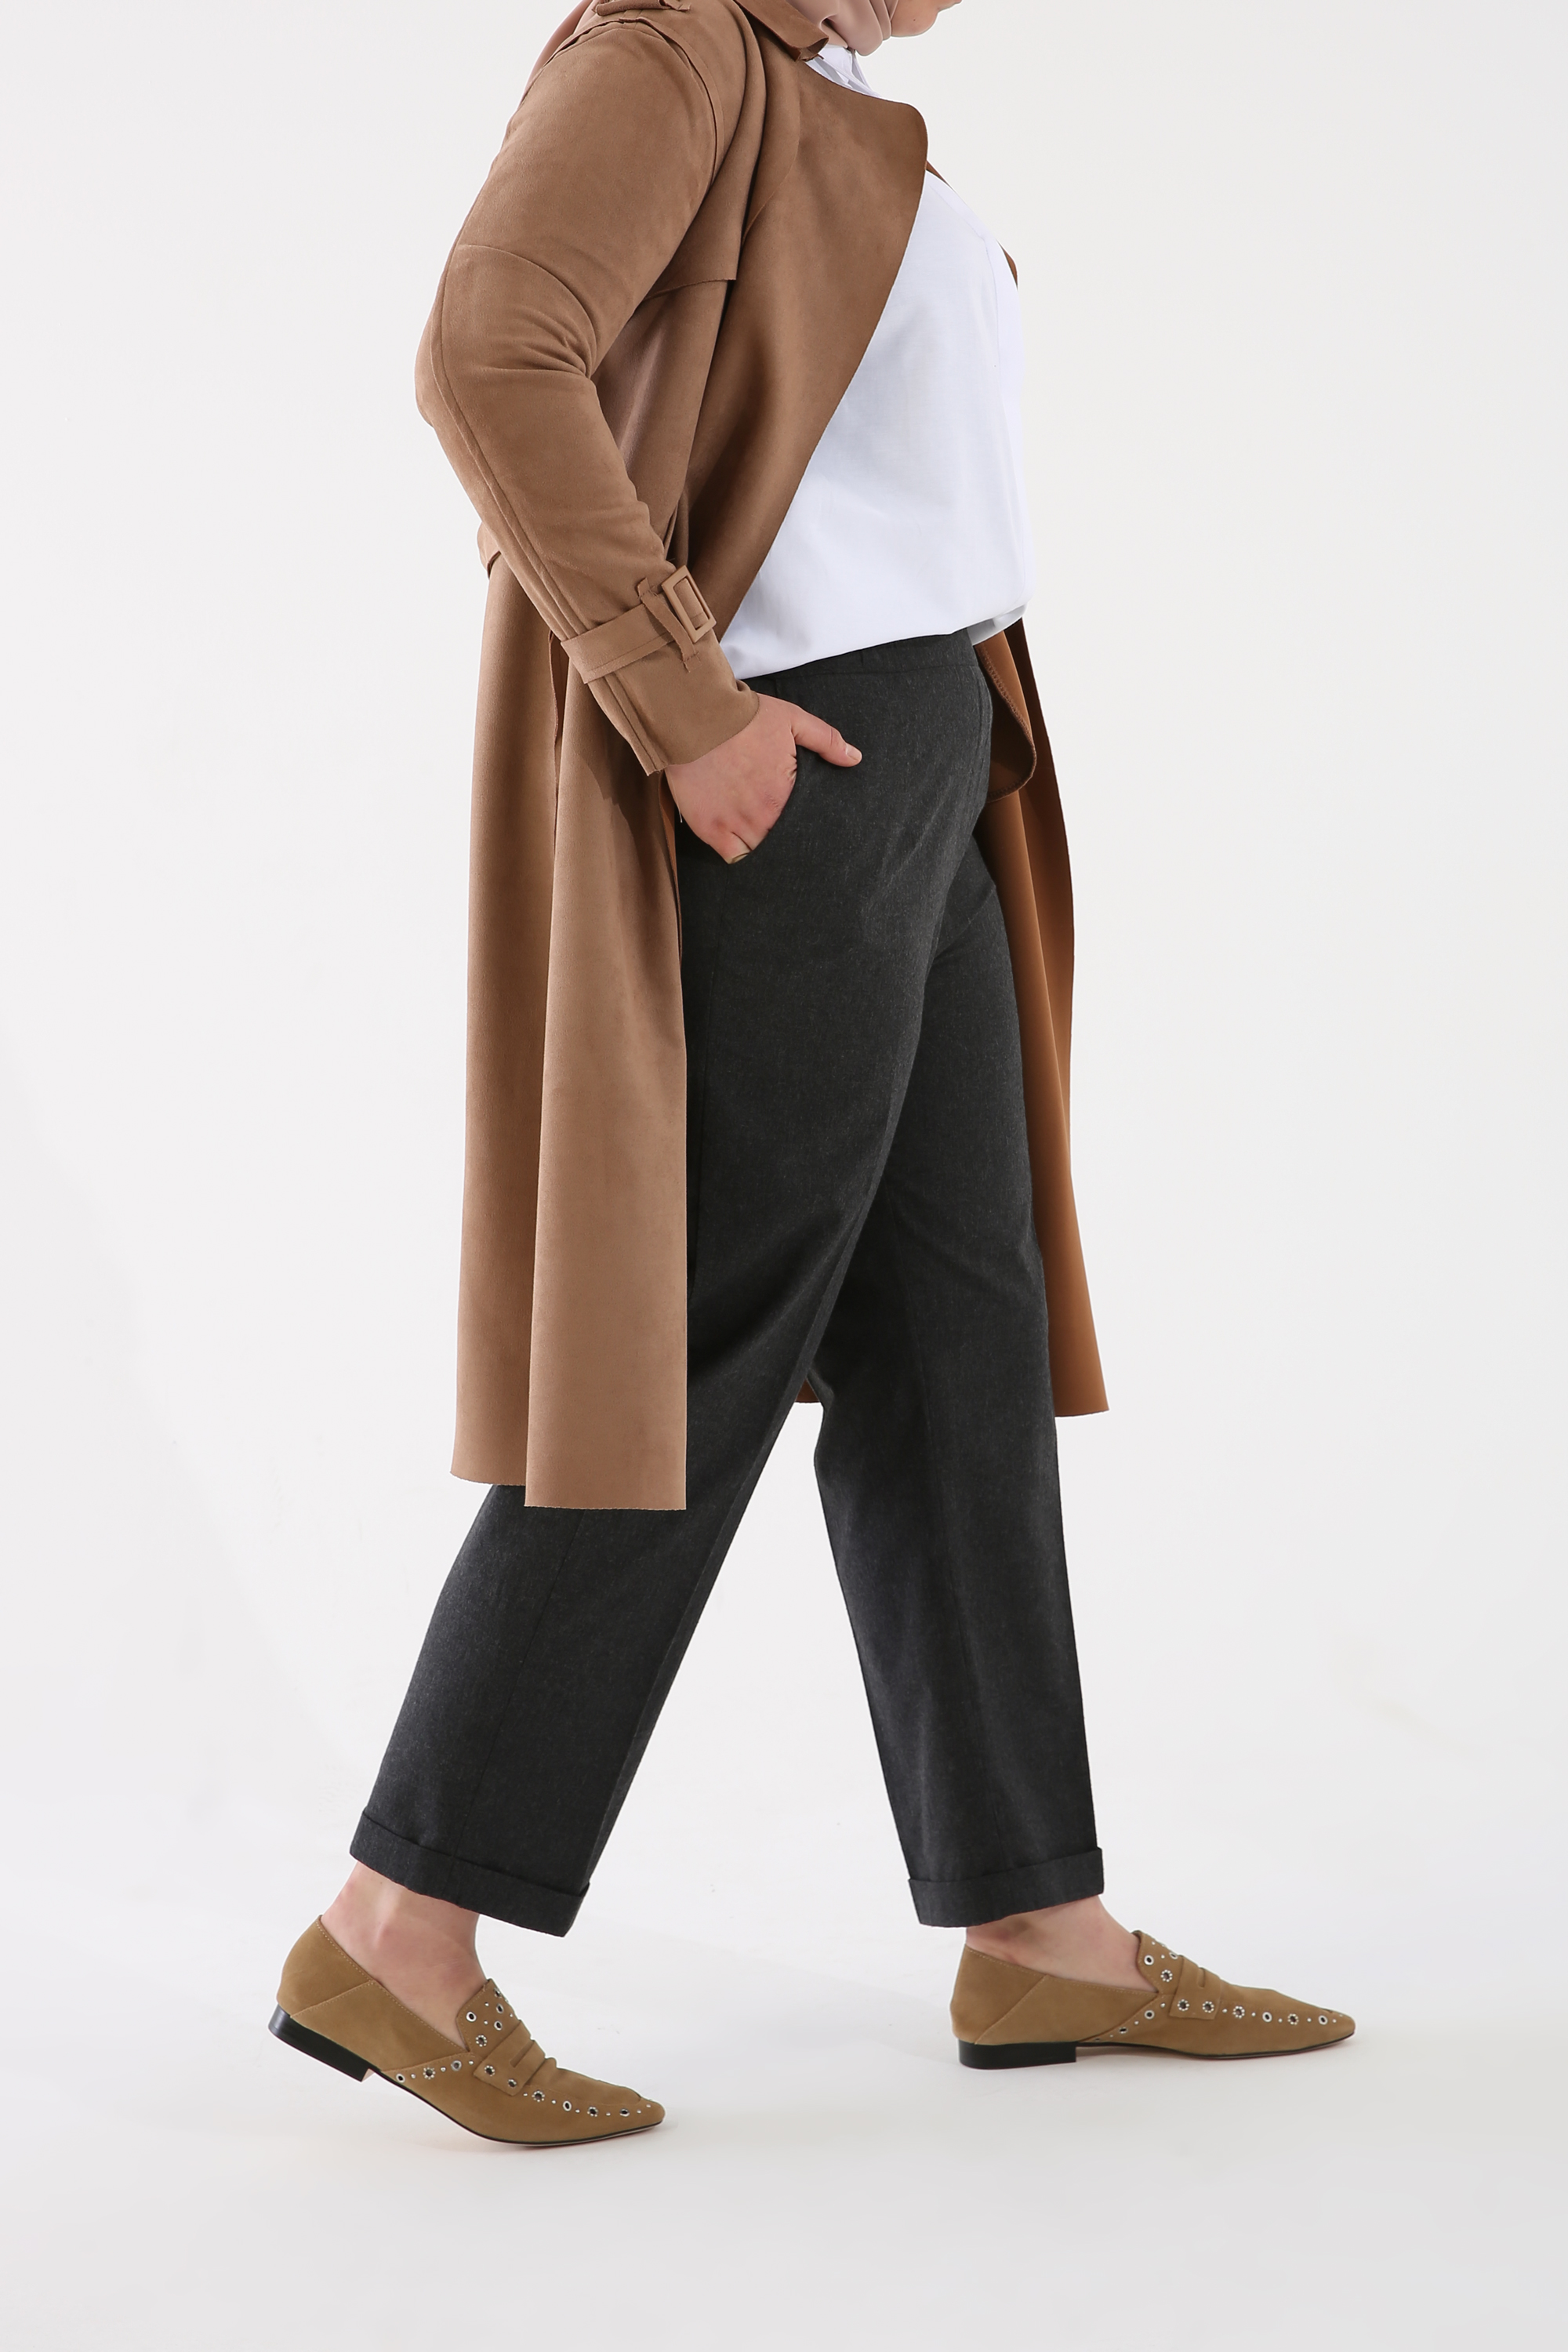 Plus Size Pegged Pants With Pockets